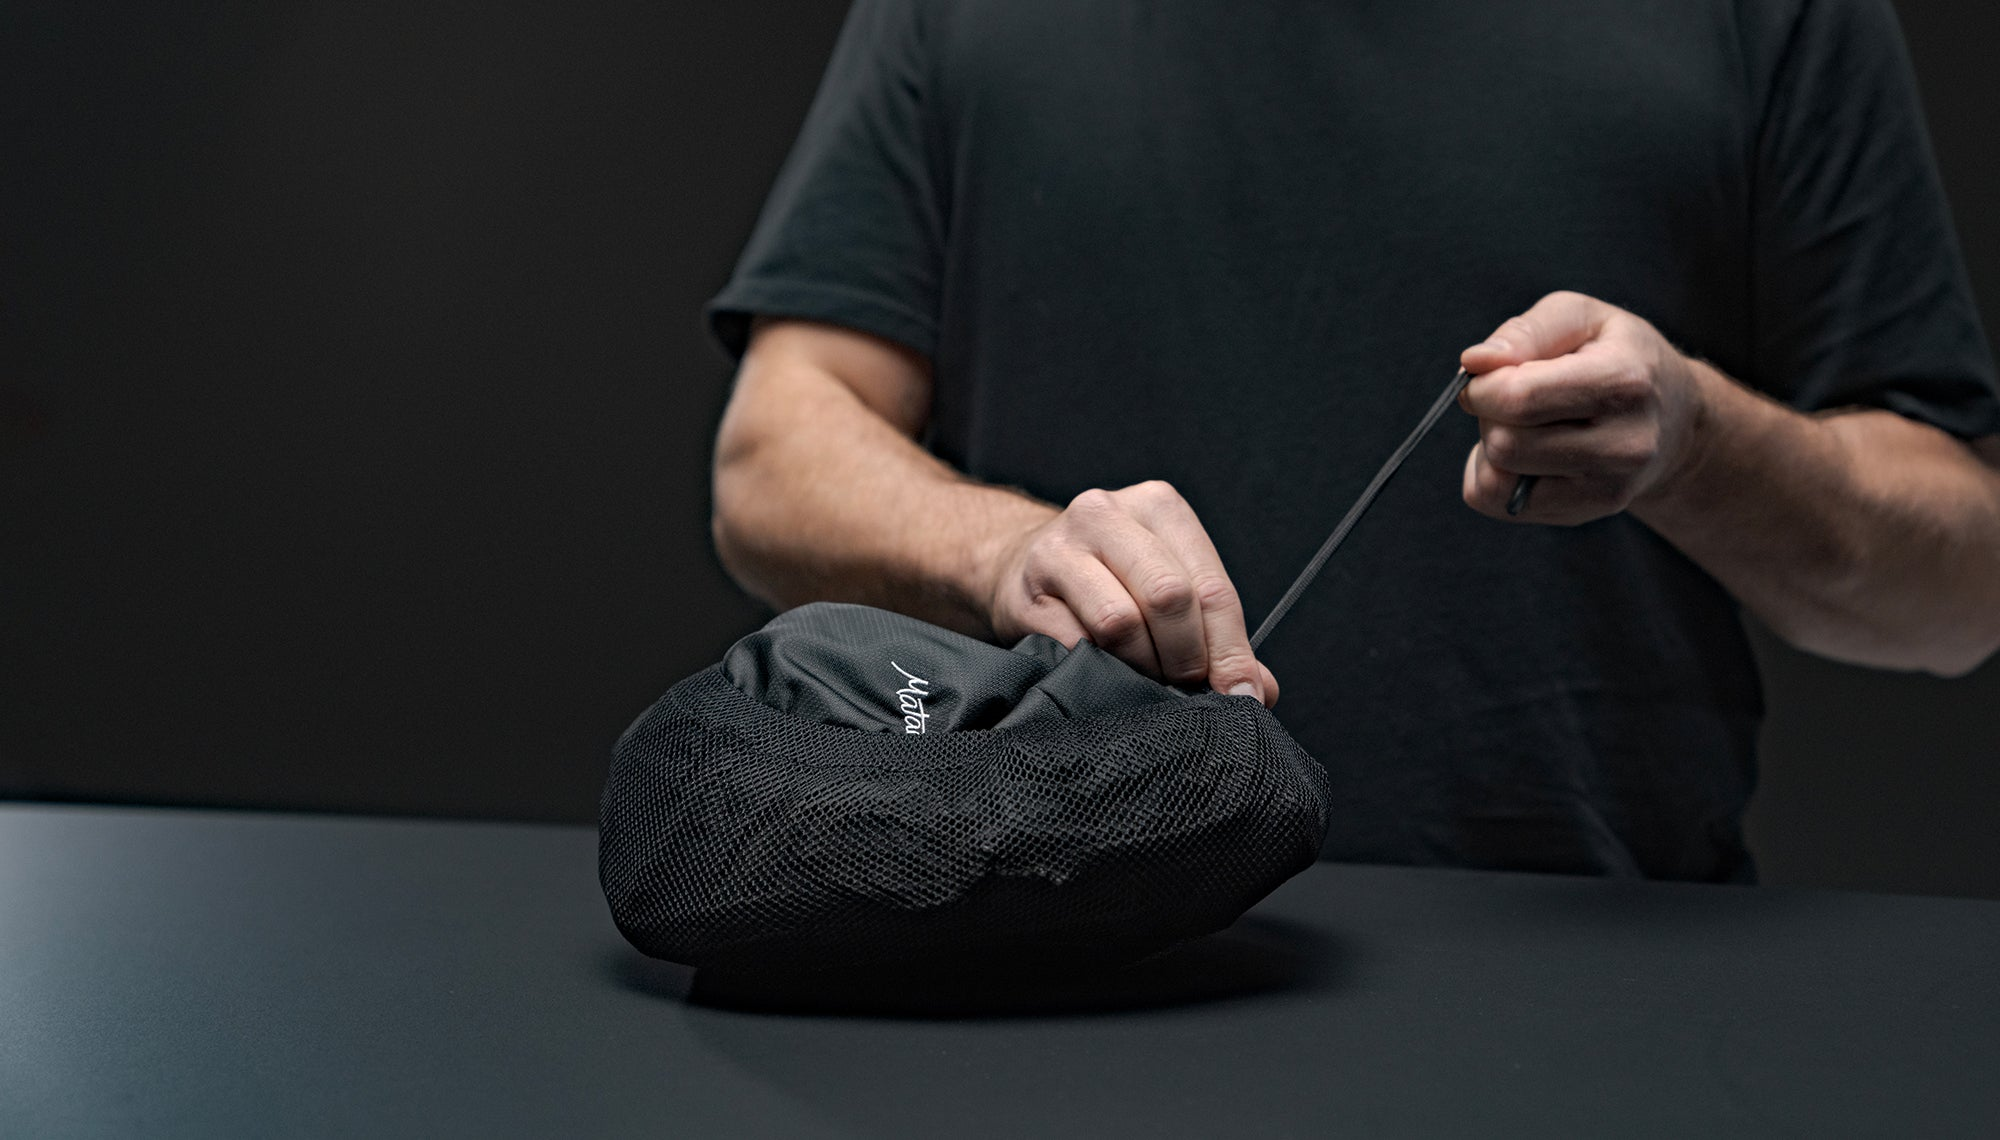 Man cinching down packable pouch